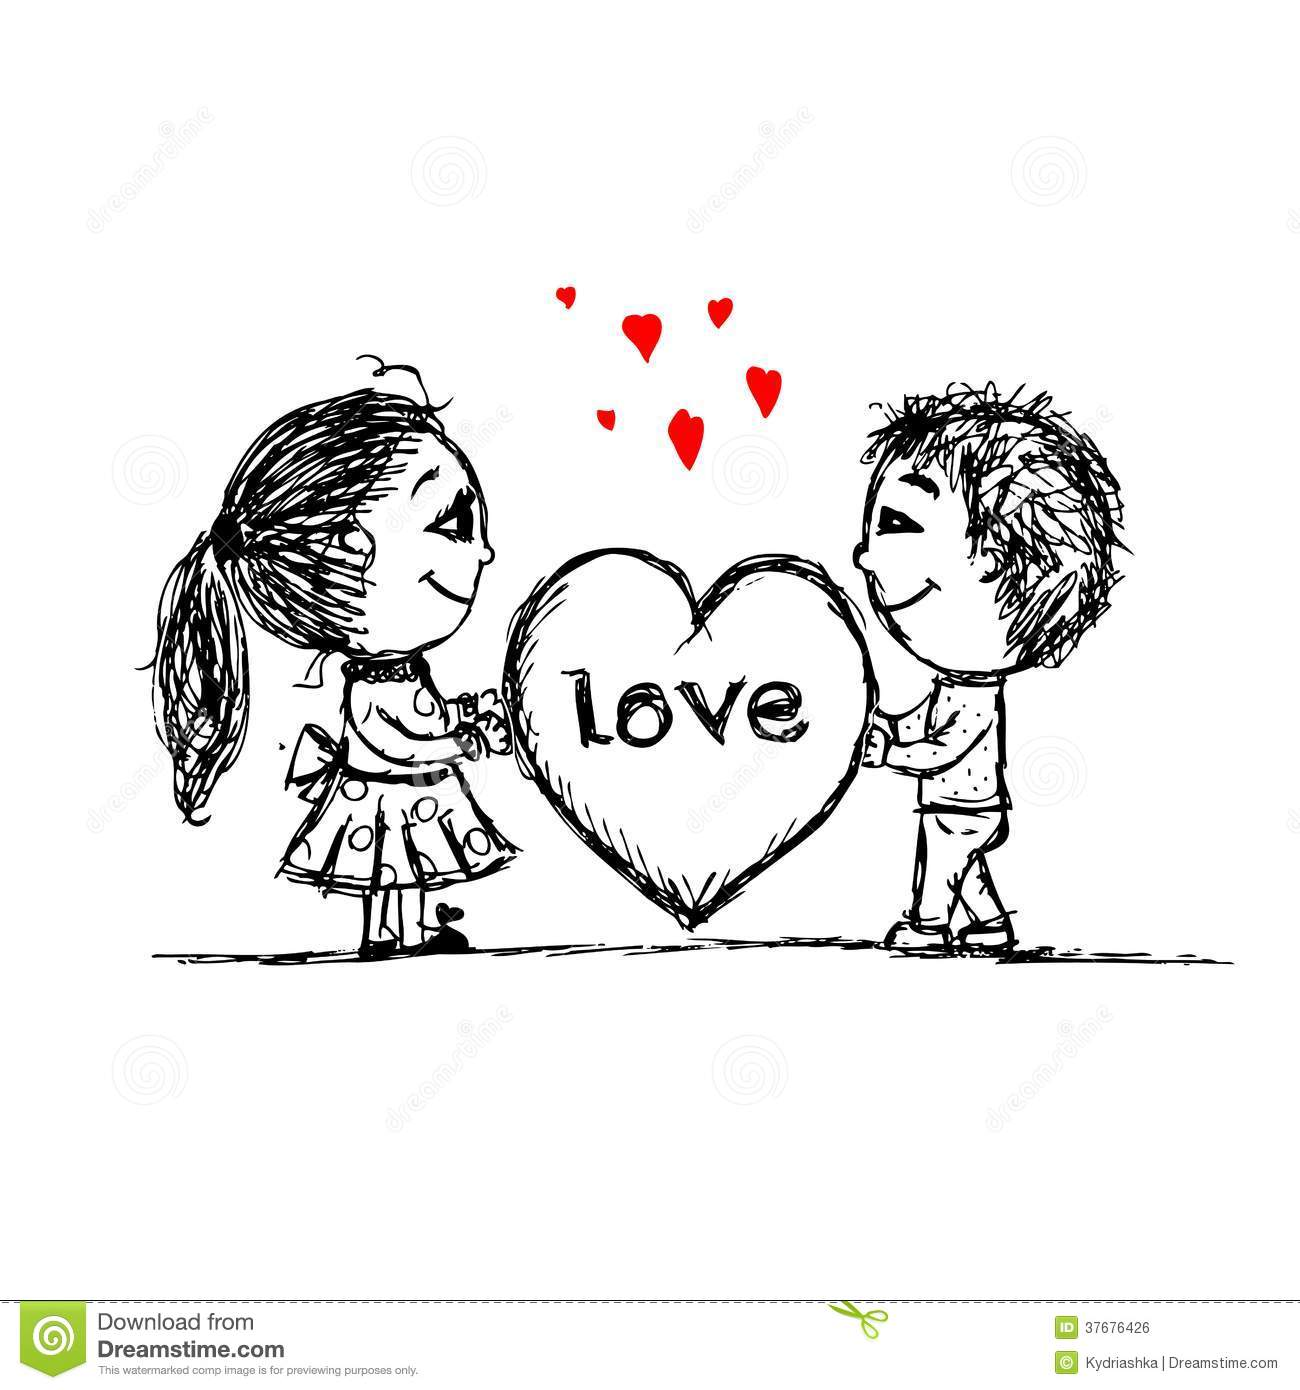 Love couple Sketch Wallpaper Hd : couple In Love Together, Valentine Sketch For Your Stock Vector - Image: 37676426